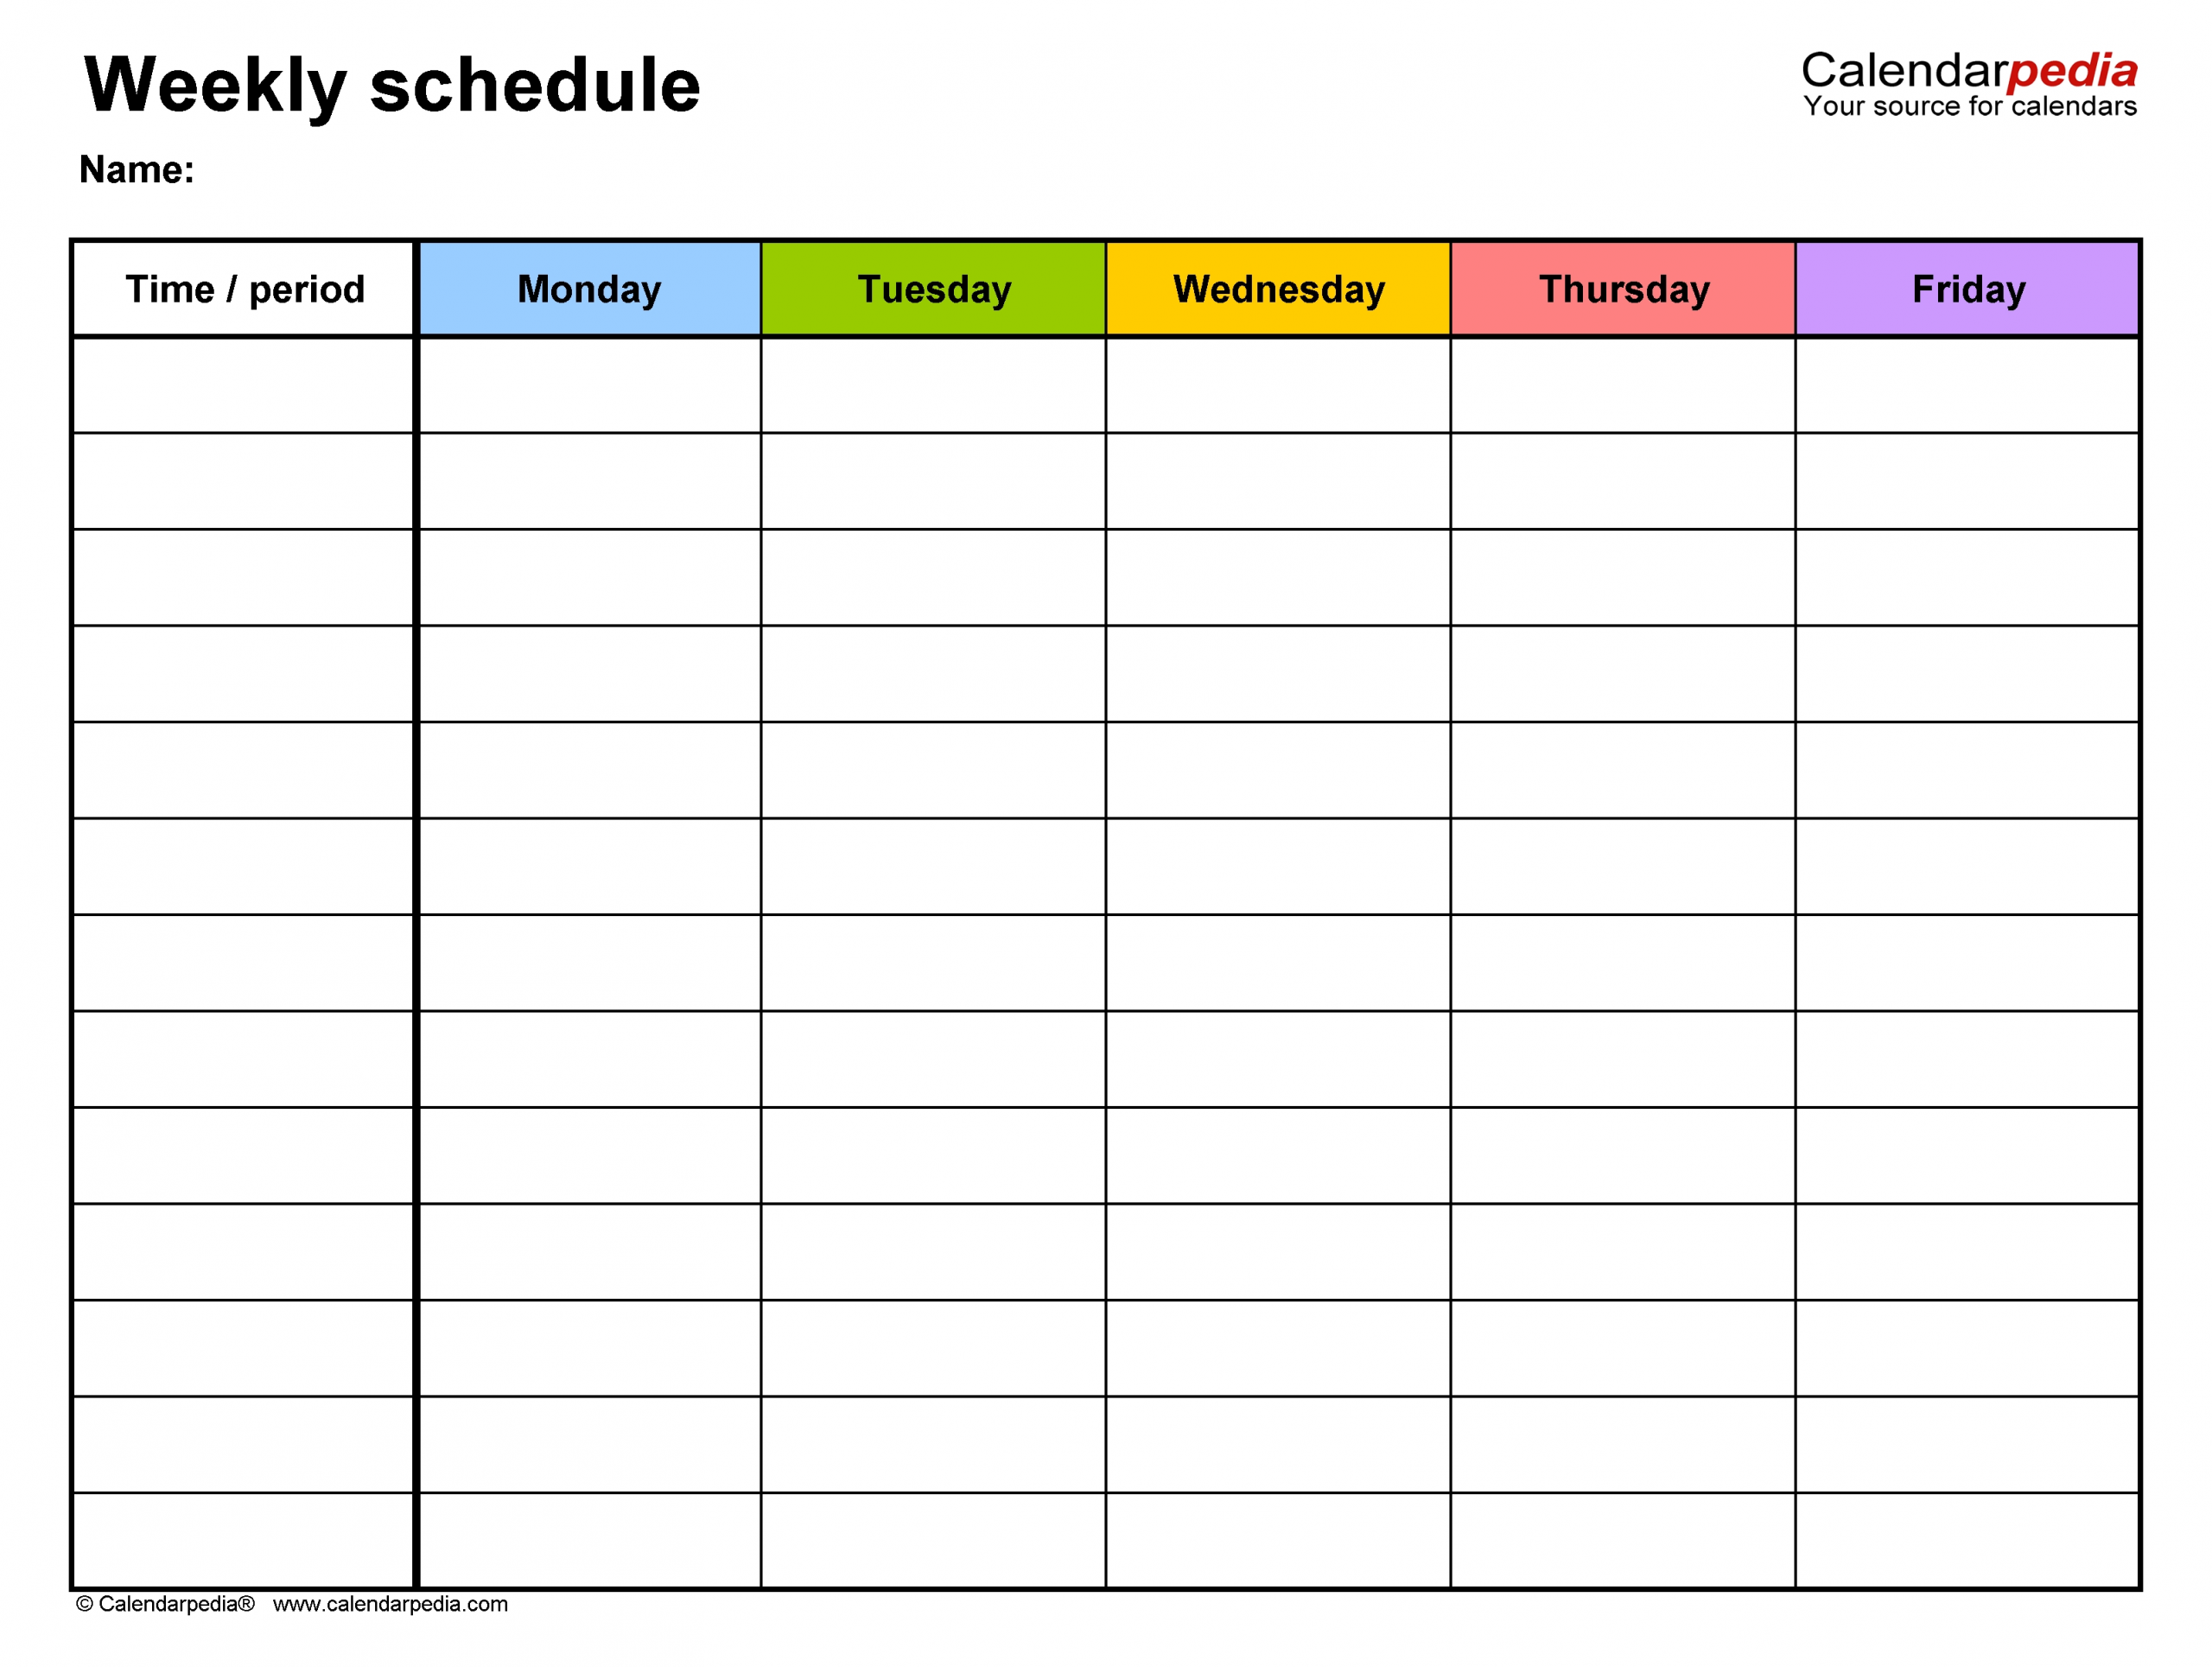 Get Monday To Friday Calendar With Times